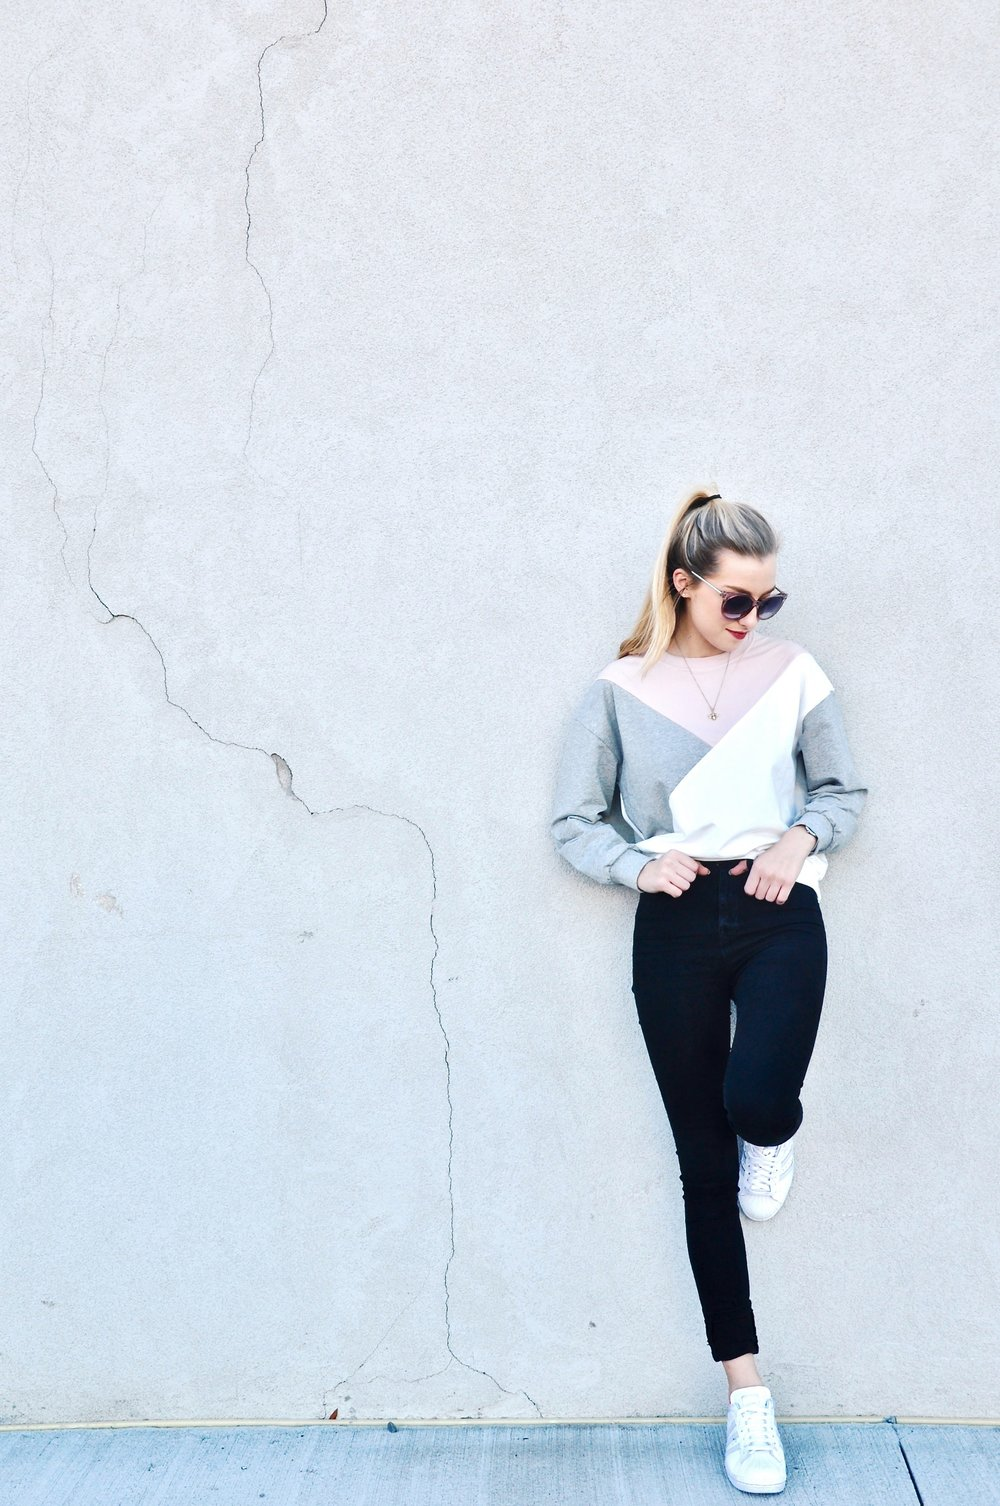 Sweatshirt:  Romwe , Watch: Mockberg, Sunglasses: Ann Taylor, Jeans: BDG Urban Outfitters, Shoes: Adidas Custom Superstars